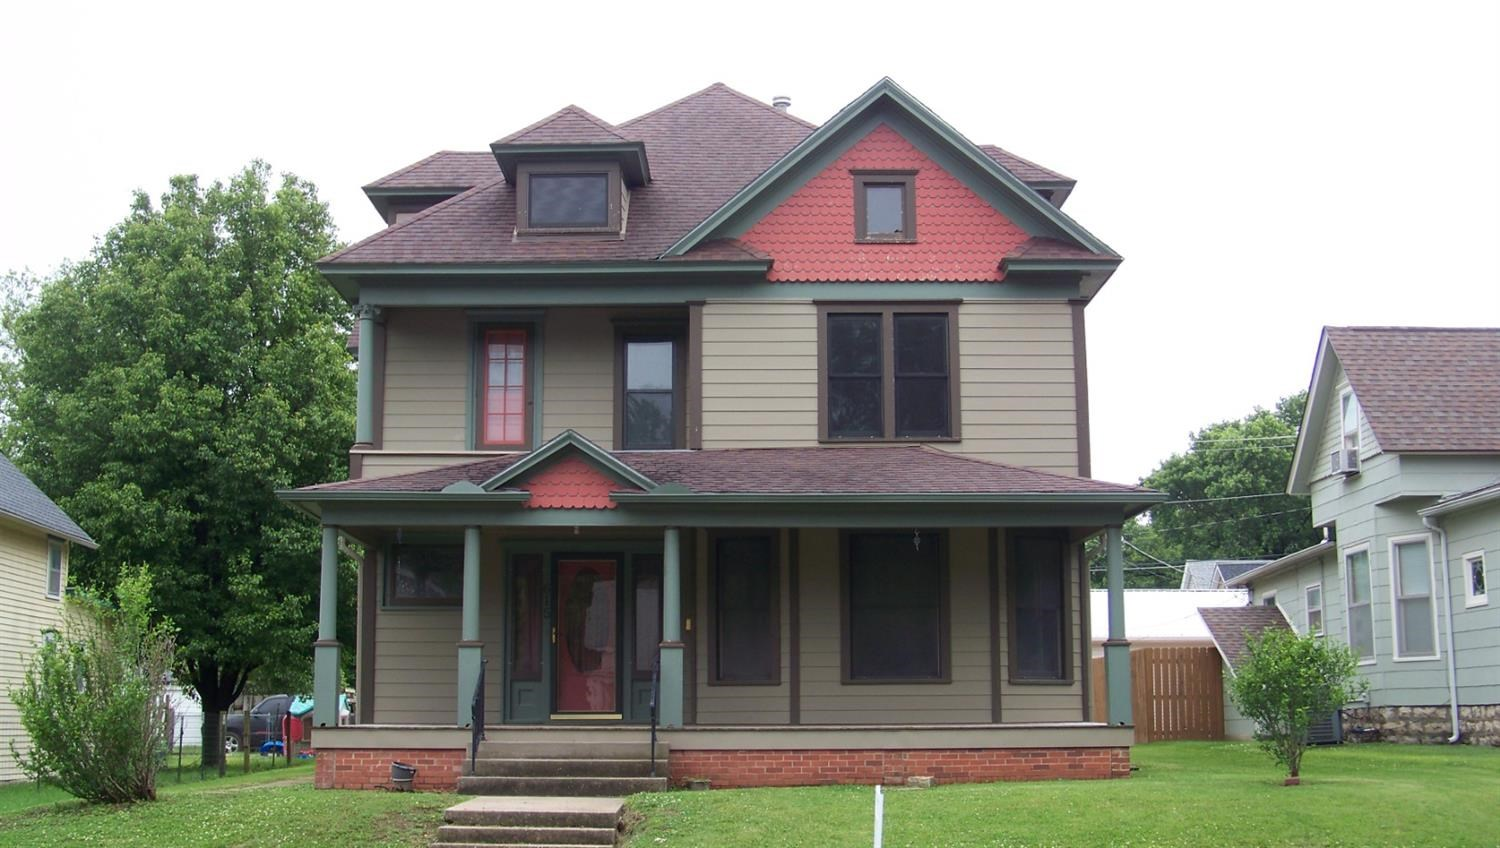 Historic Home for sale in Chanute Kansas